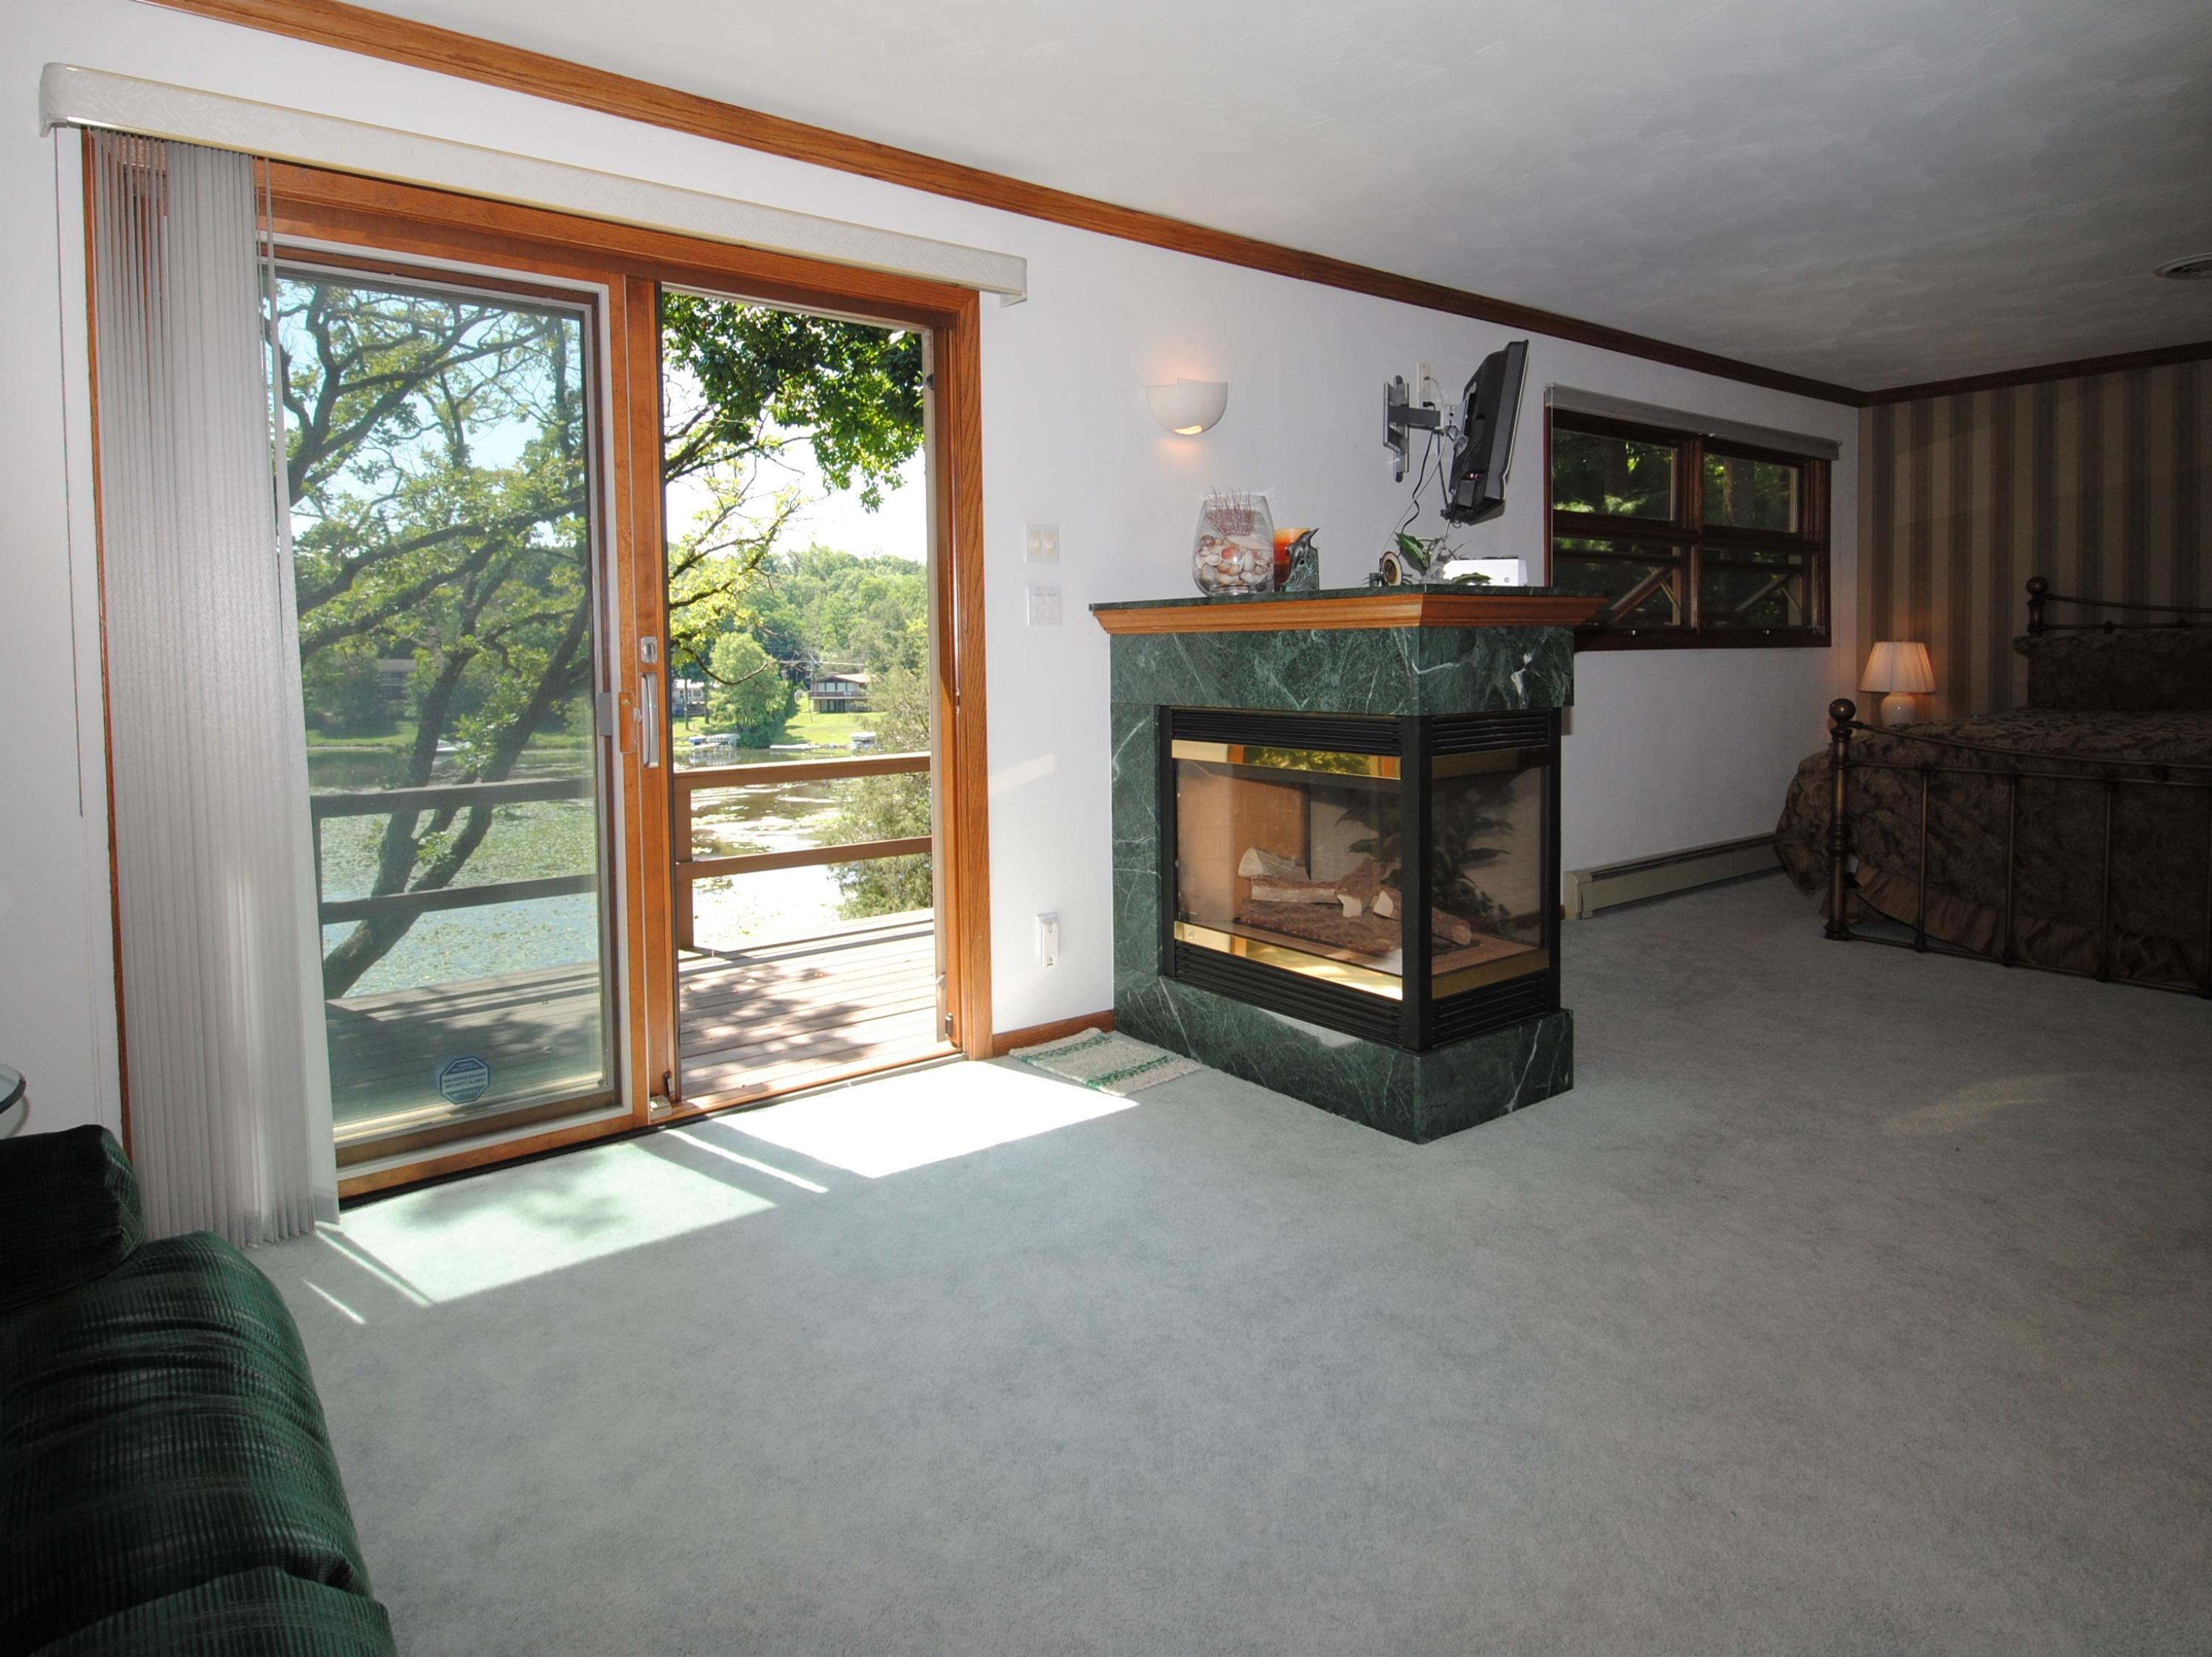 W5725 Ridge Rd, La Grange, Wisconsin 53121, 3 Bedrooms Bedrooms, 7 Rooms Rooms,3 BathroomsBathrooms,Single-family,For Sale,Ridge Rd,1702503